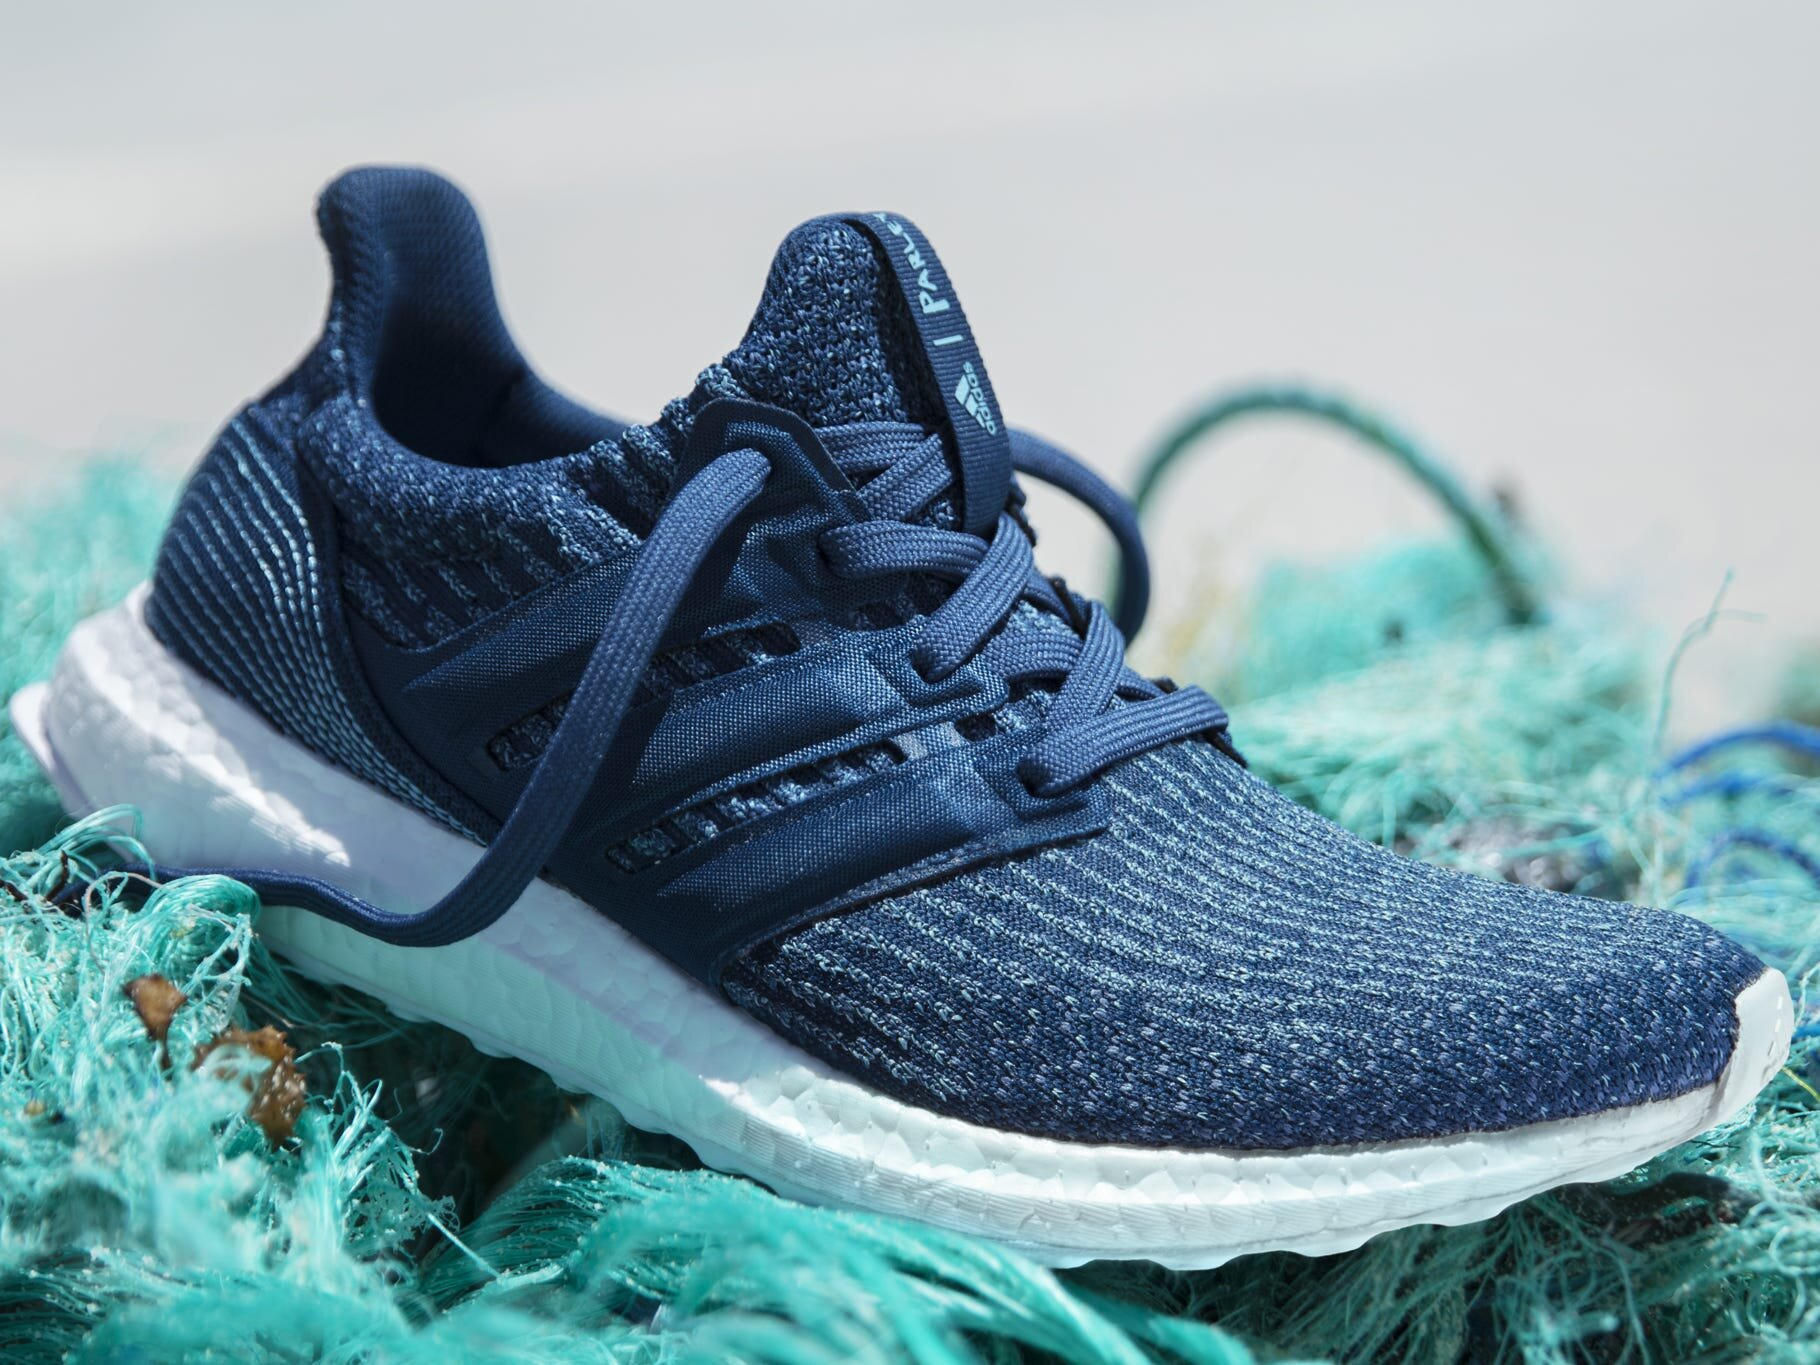 The UltraBoost sneaker from Adidas' Parley ocean plastic collection.  Adidas